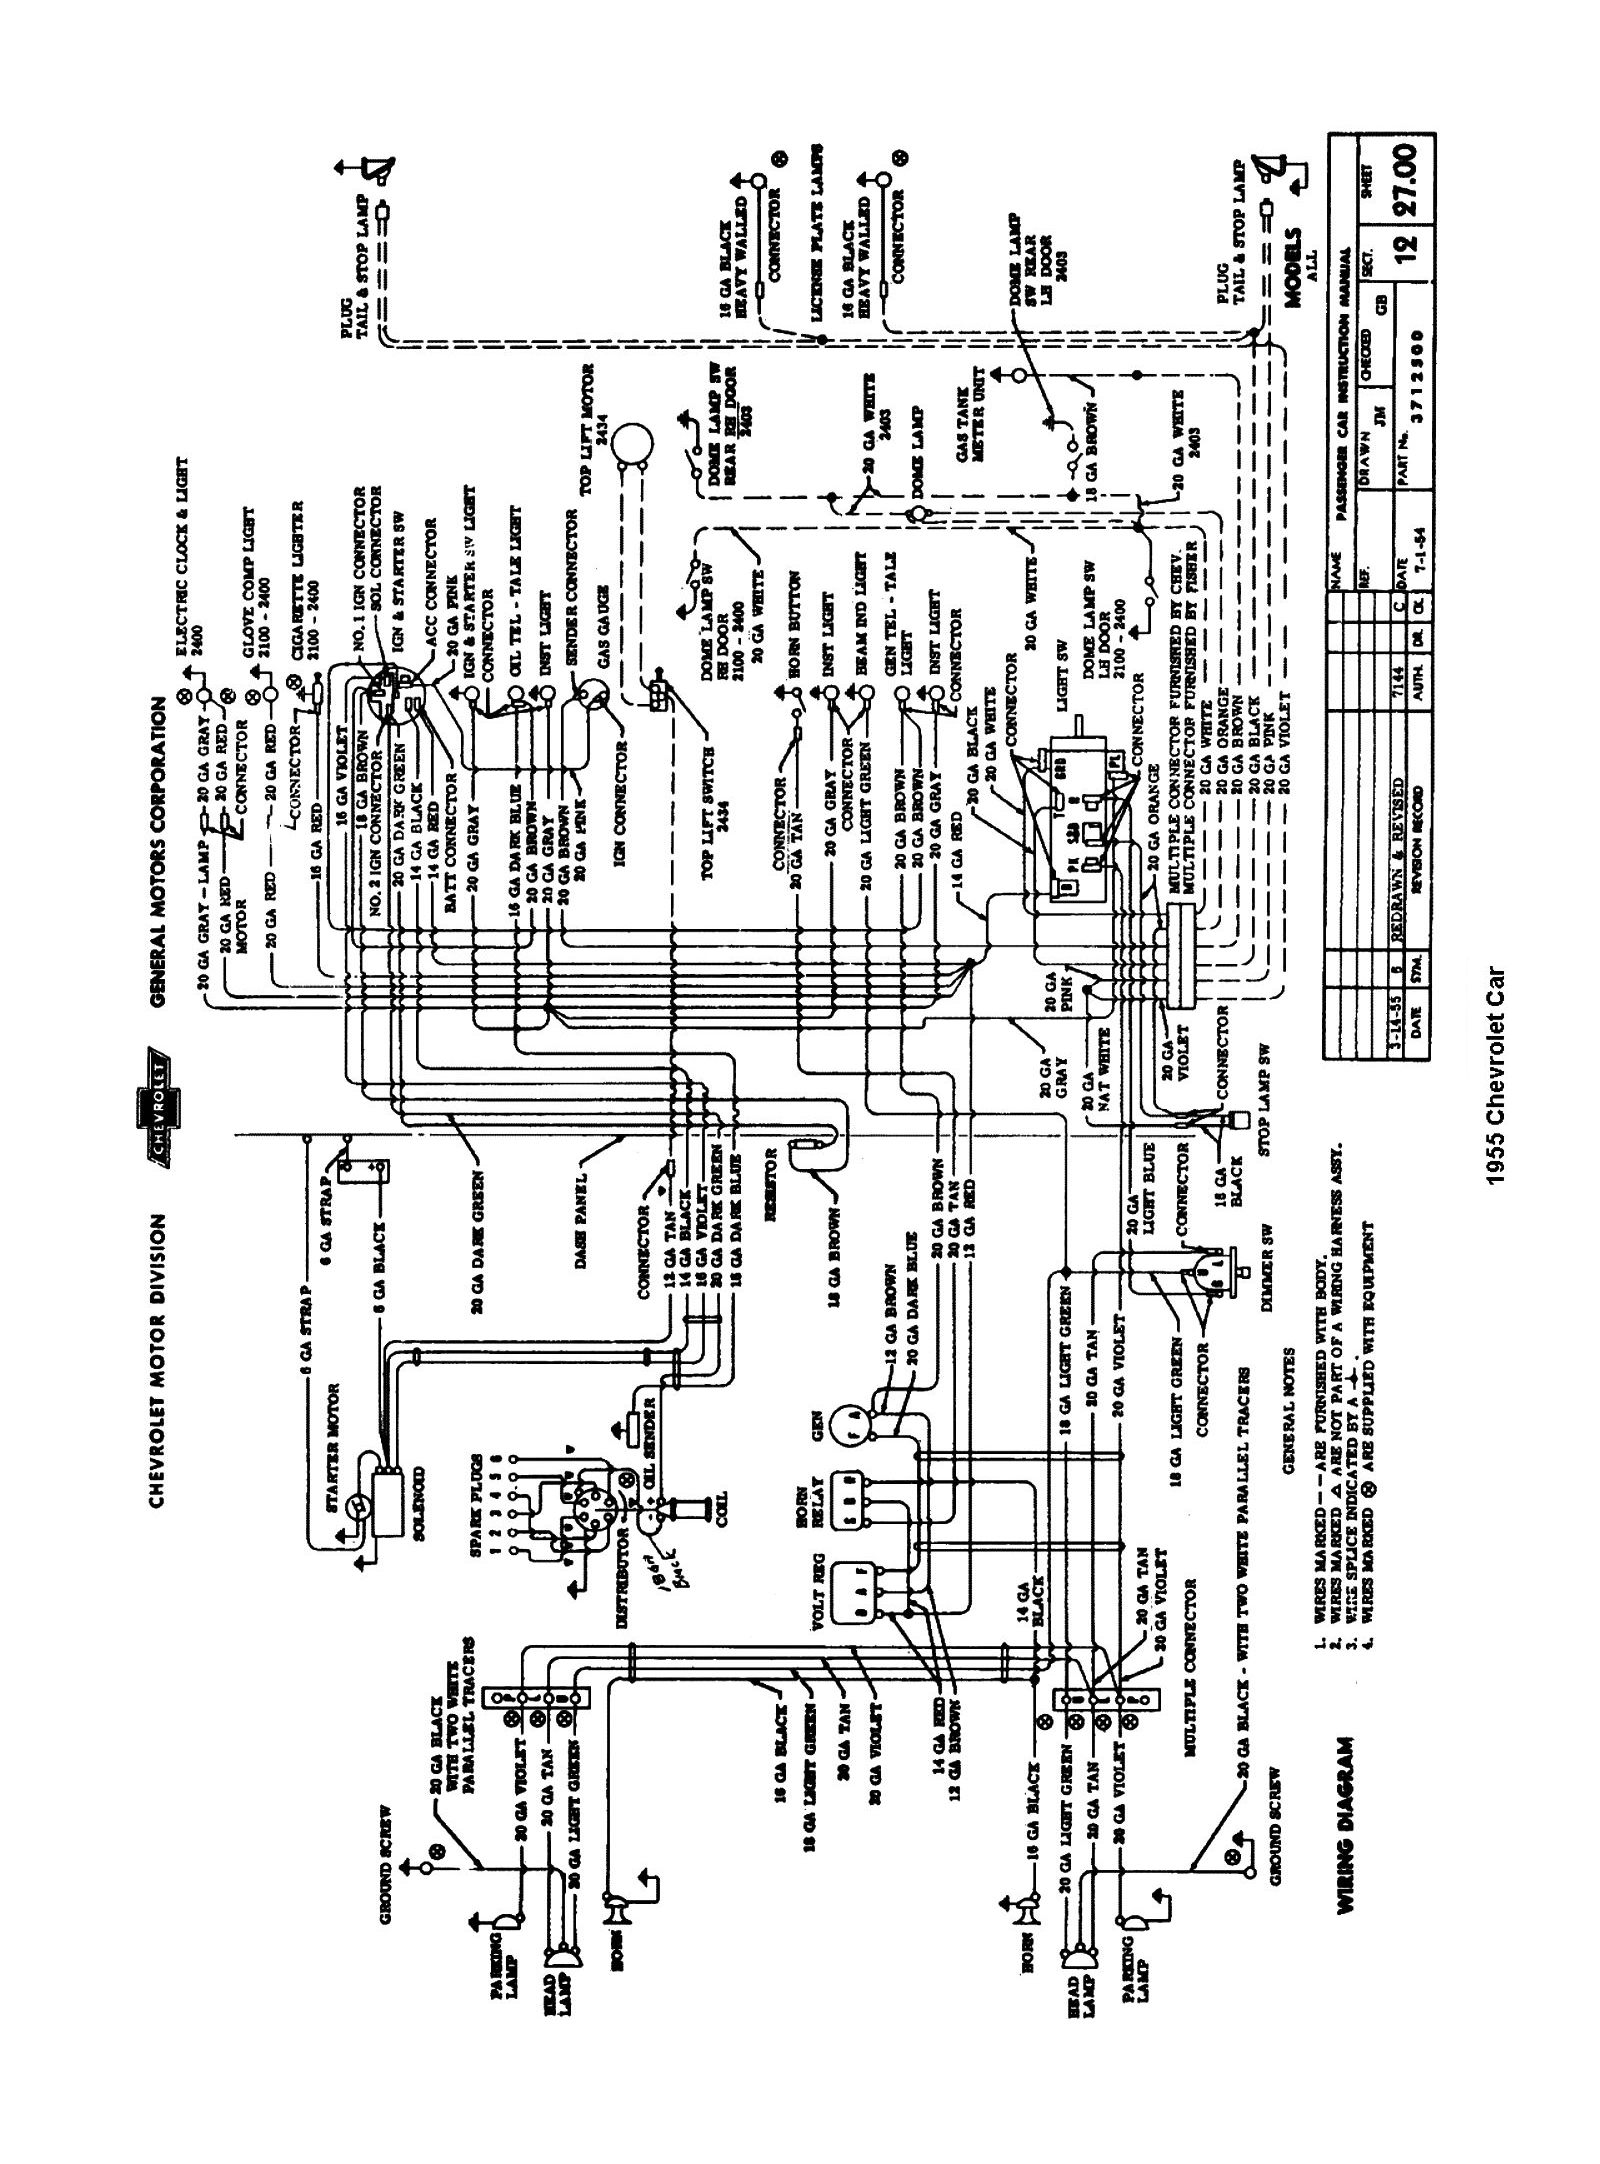 Ford Generator Wiring Diagram For 55 on 1953 ford overdrive wiring diagram